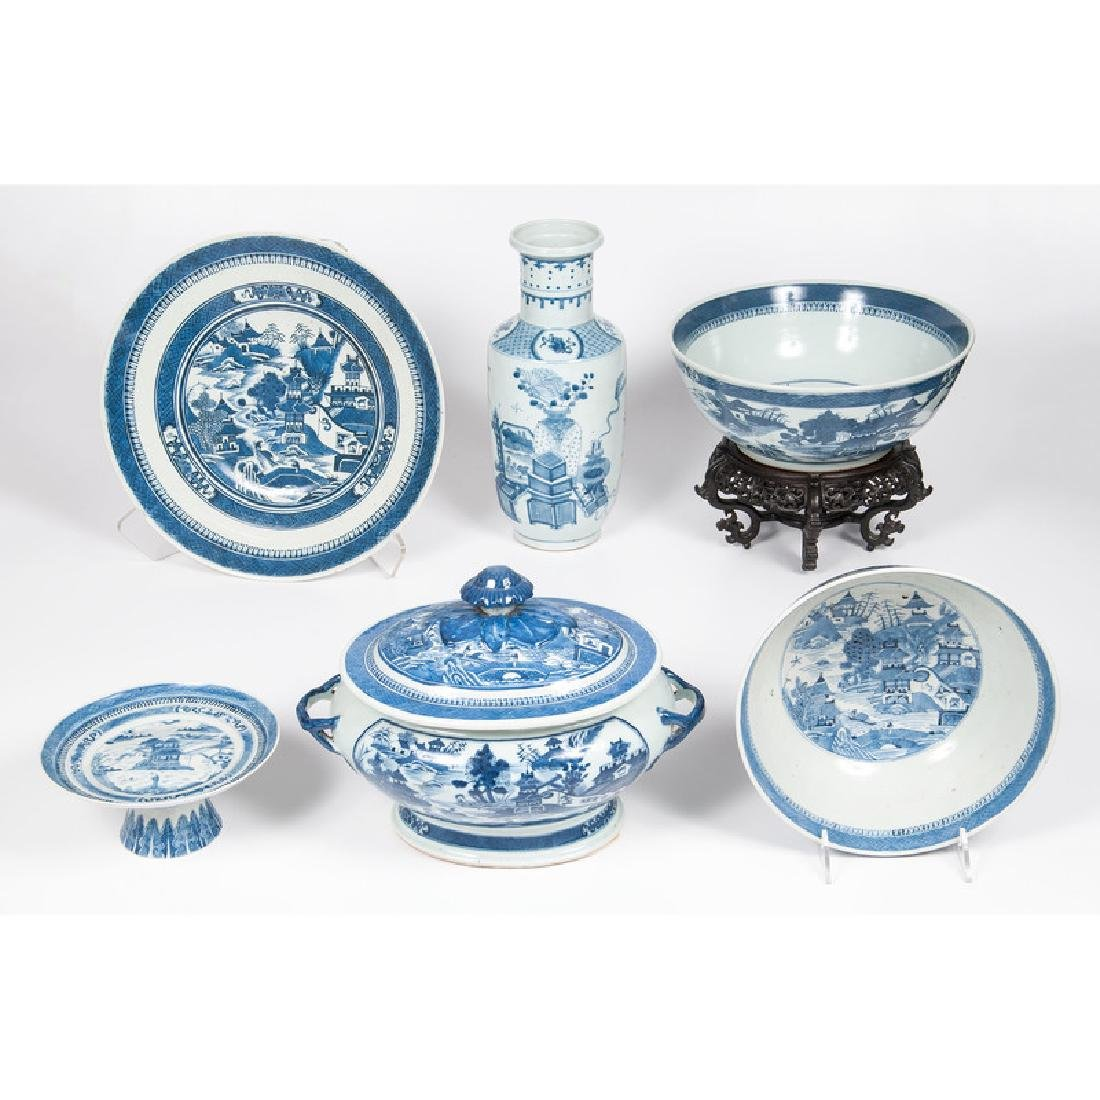 Chinese Export Nanking Tureen and Trays